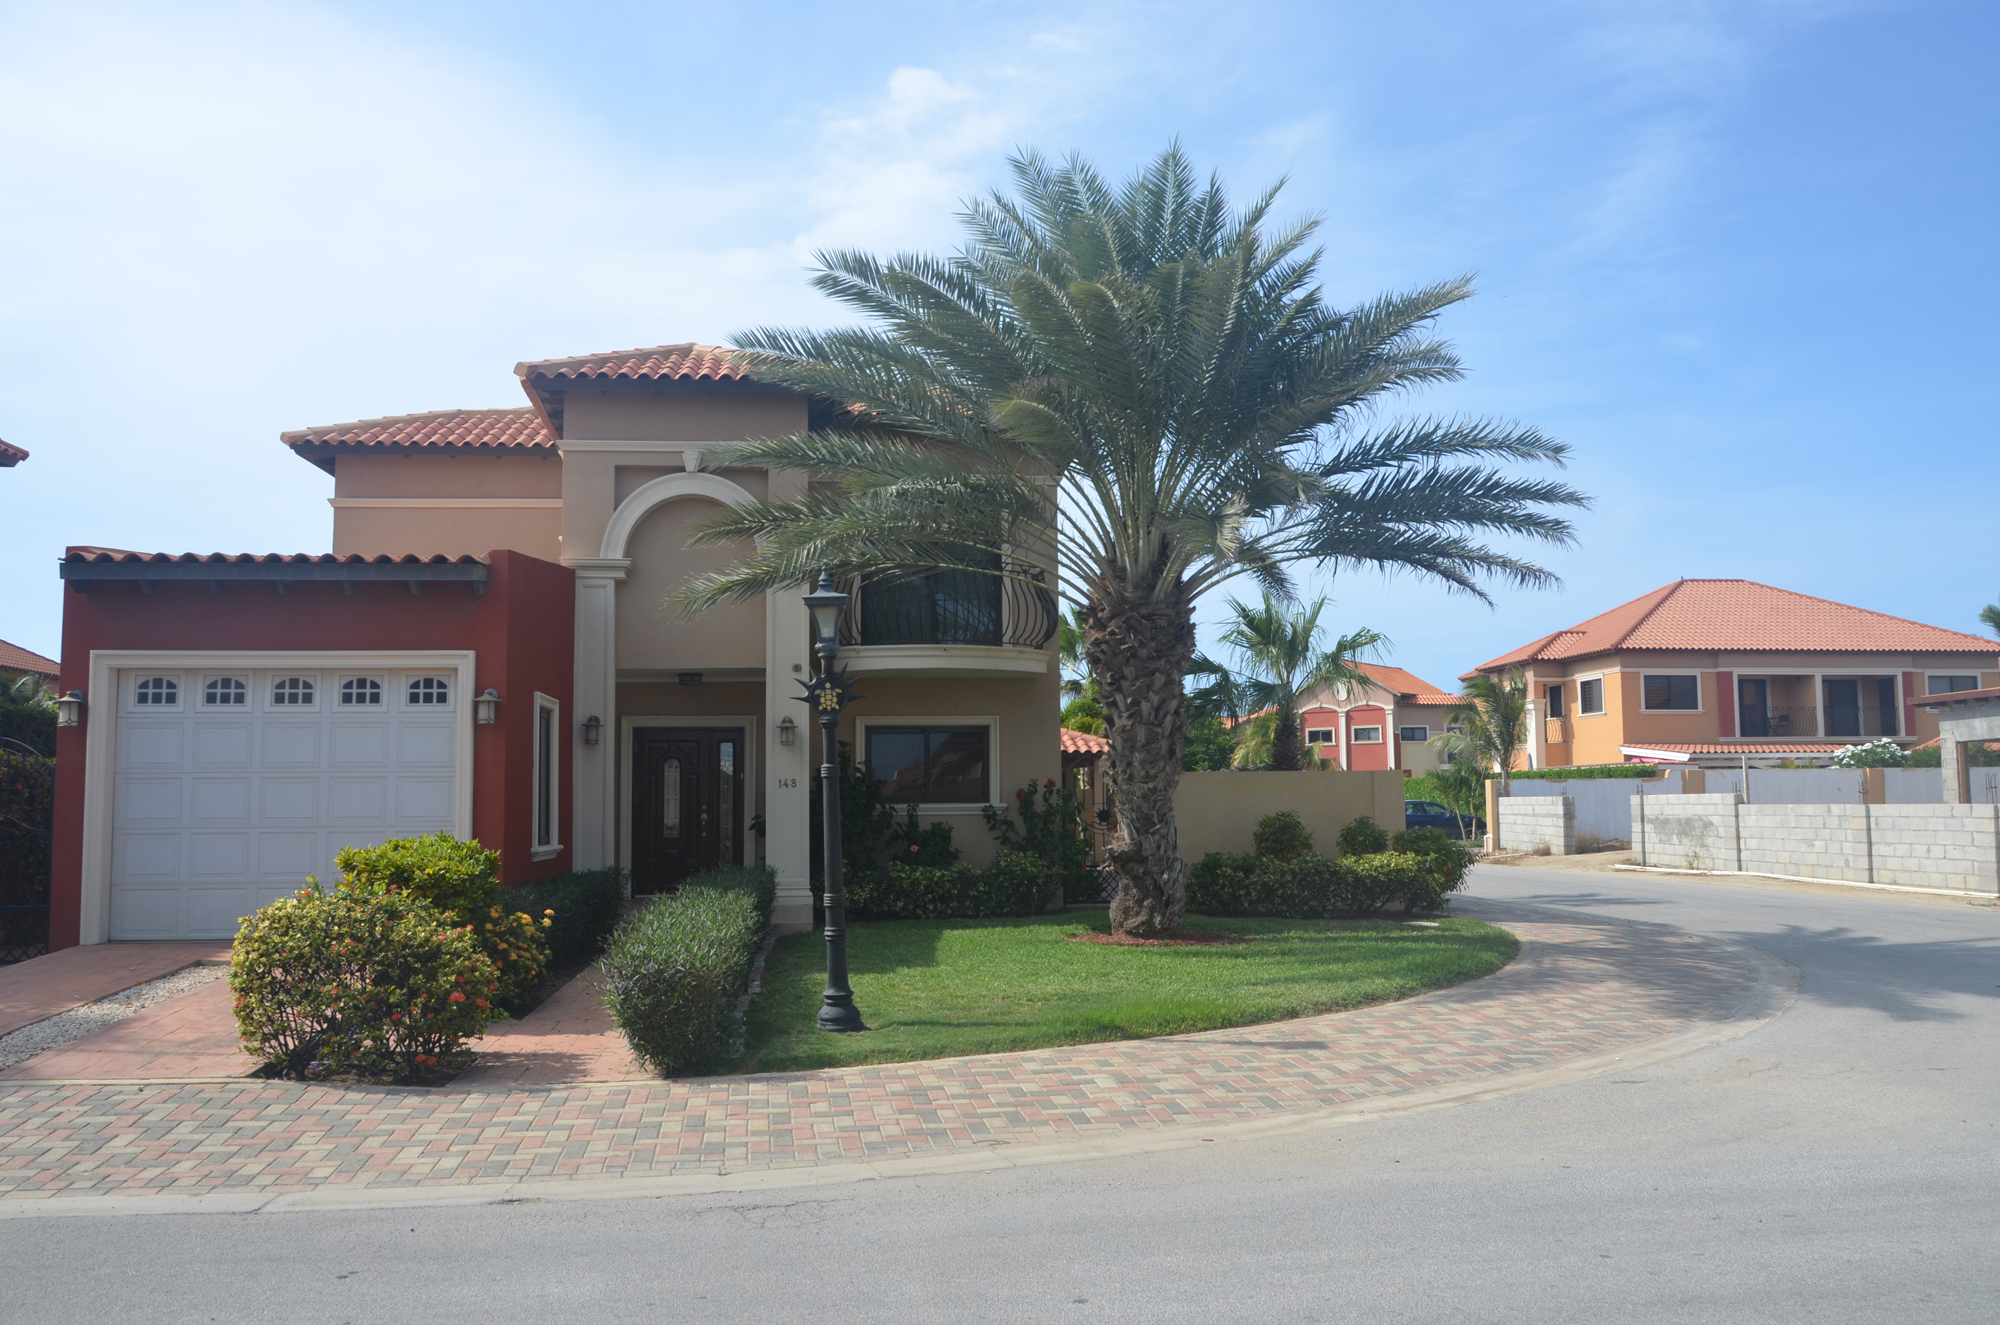 Single Family Home for Sale at Villa Basiruti Gold Coast Residence Malmok, Aruba 21000 Aruba